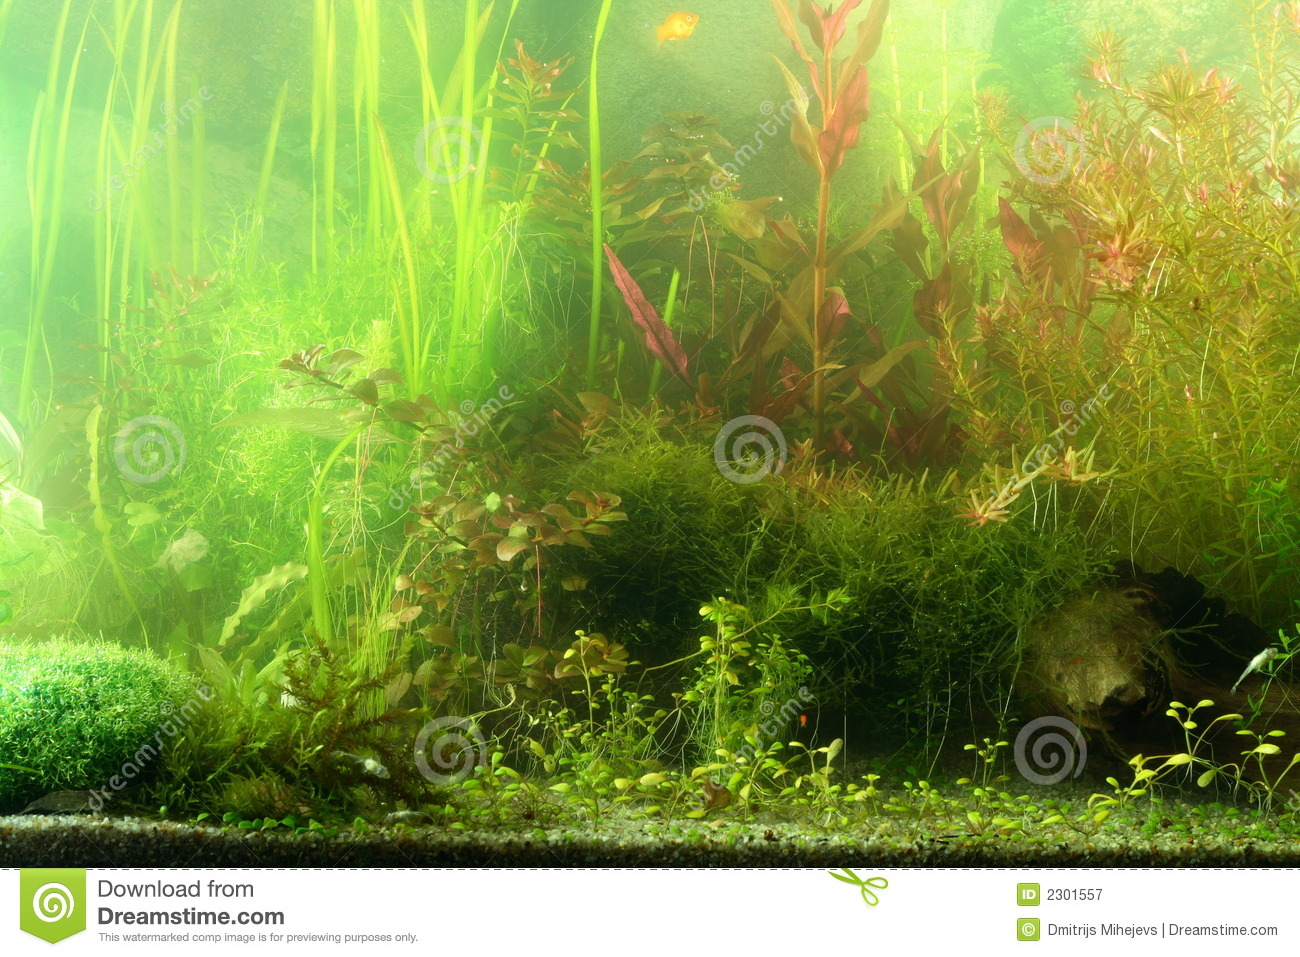 Aquarium landscape royalty free stock photography image Aquarium landscape